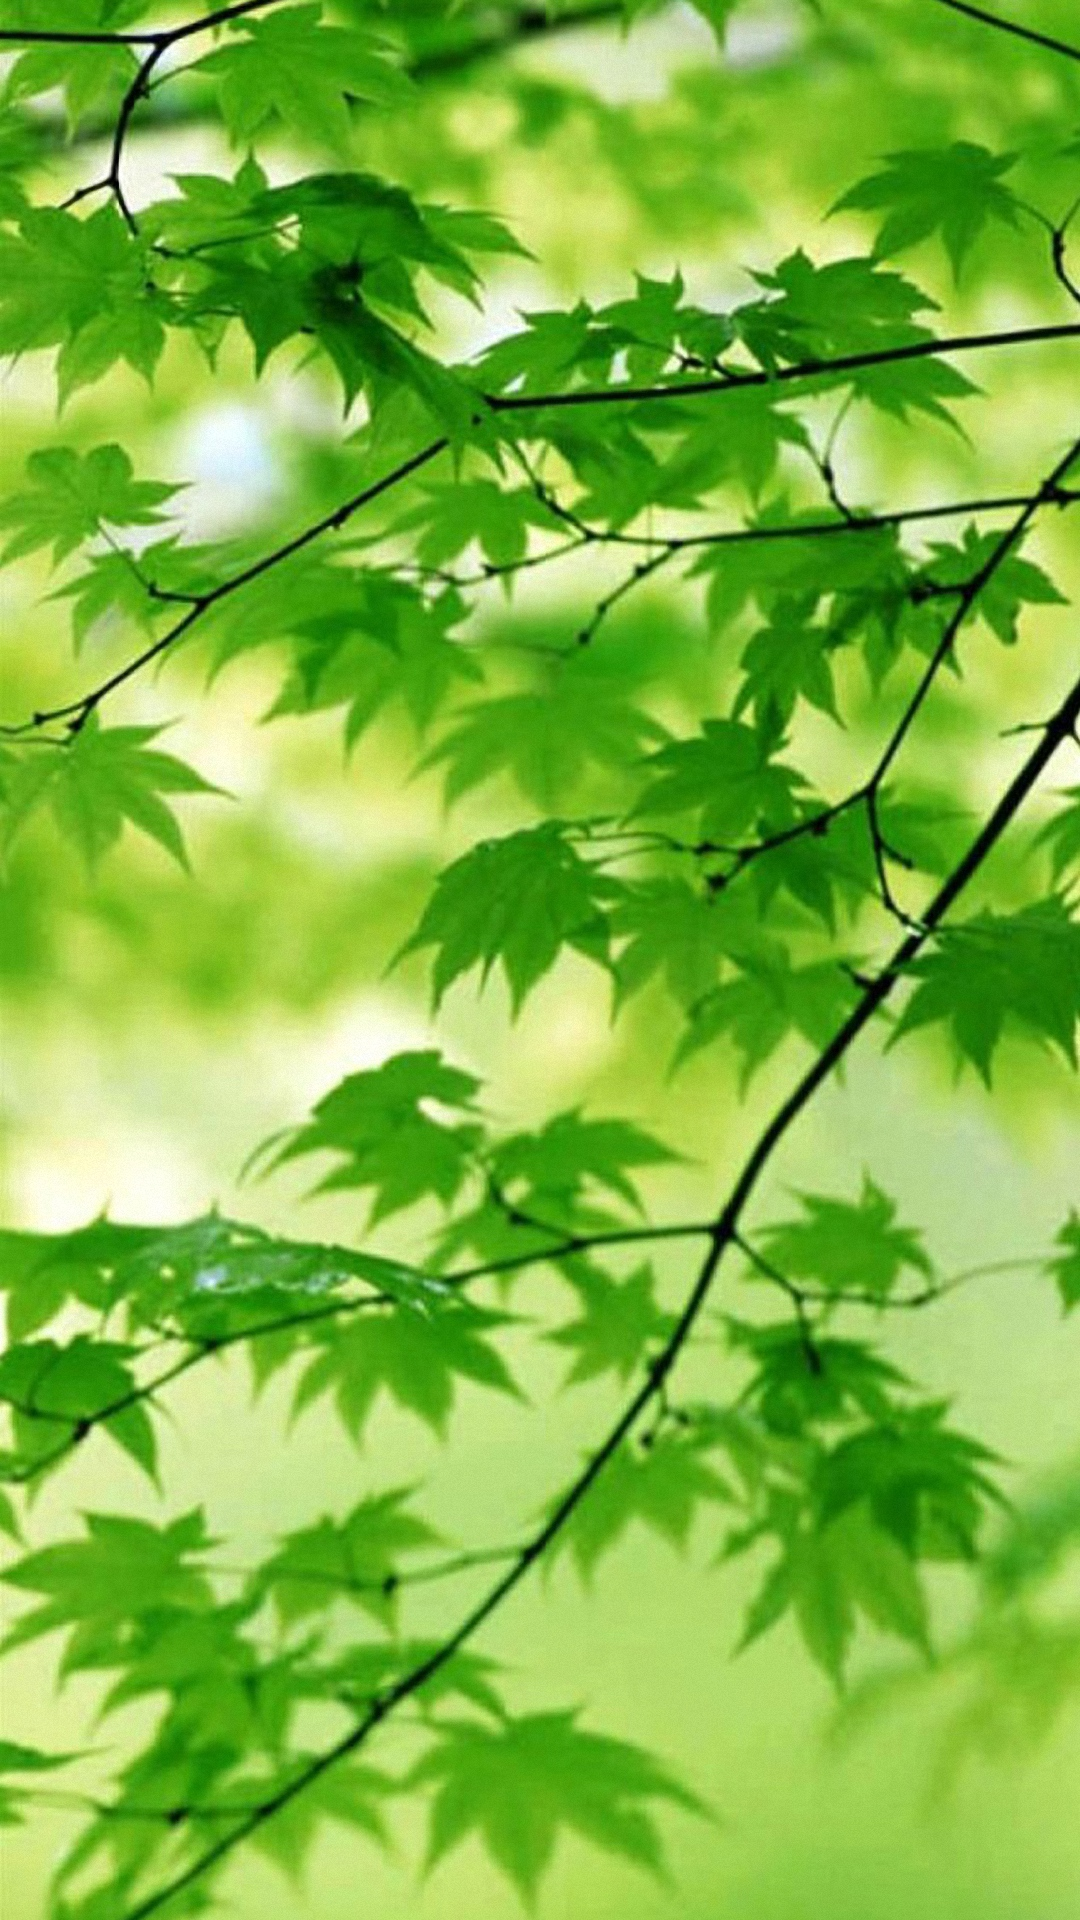 Cute Leaves samsung galaxy s4 s5 Wallpapers HD